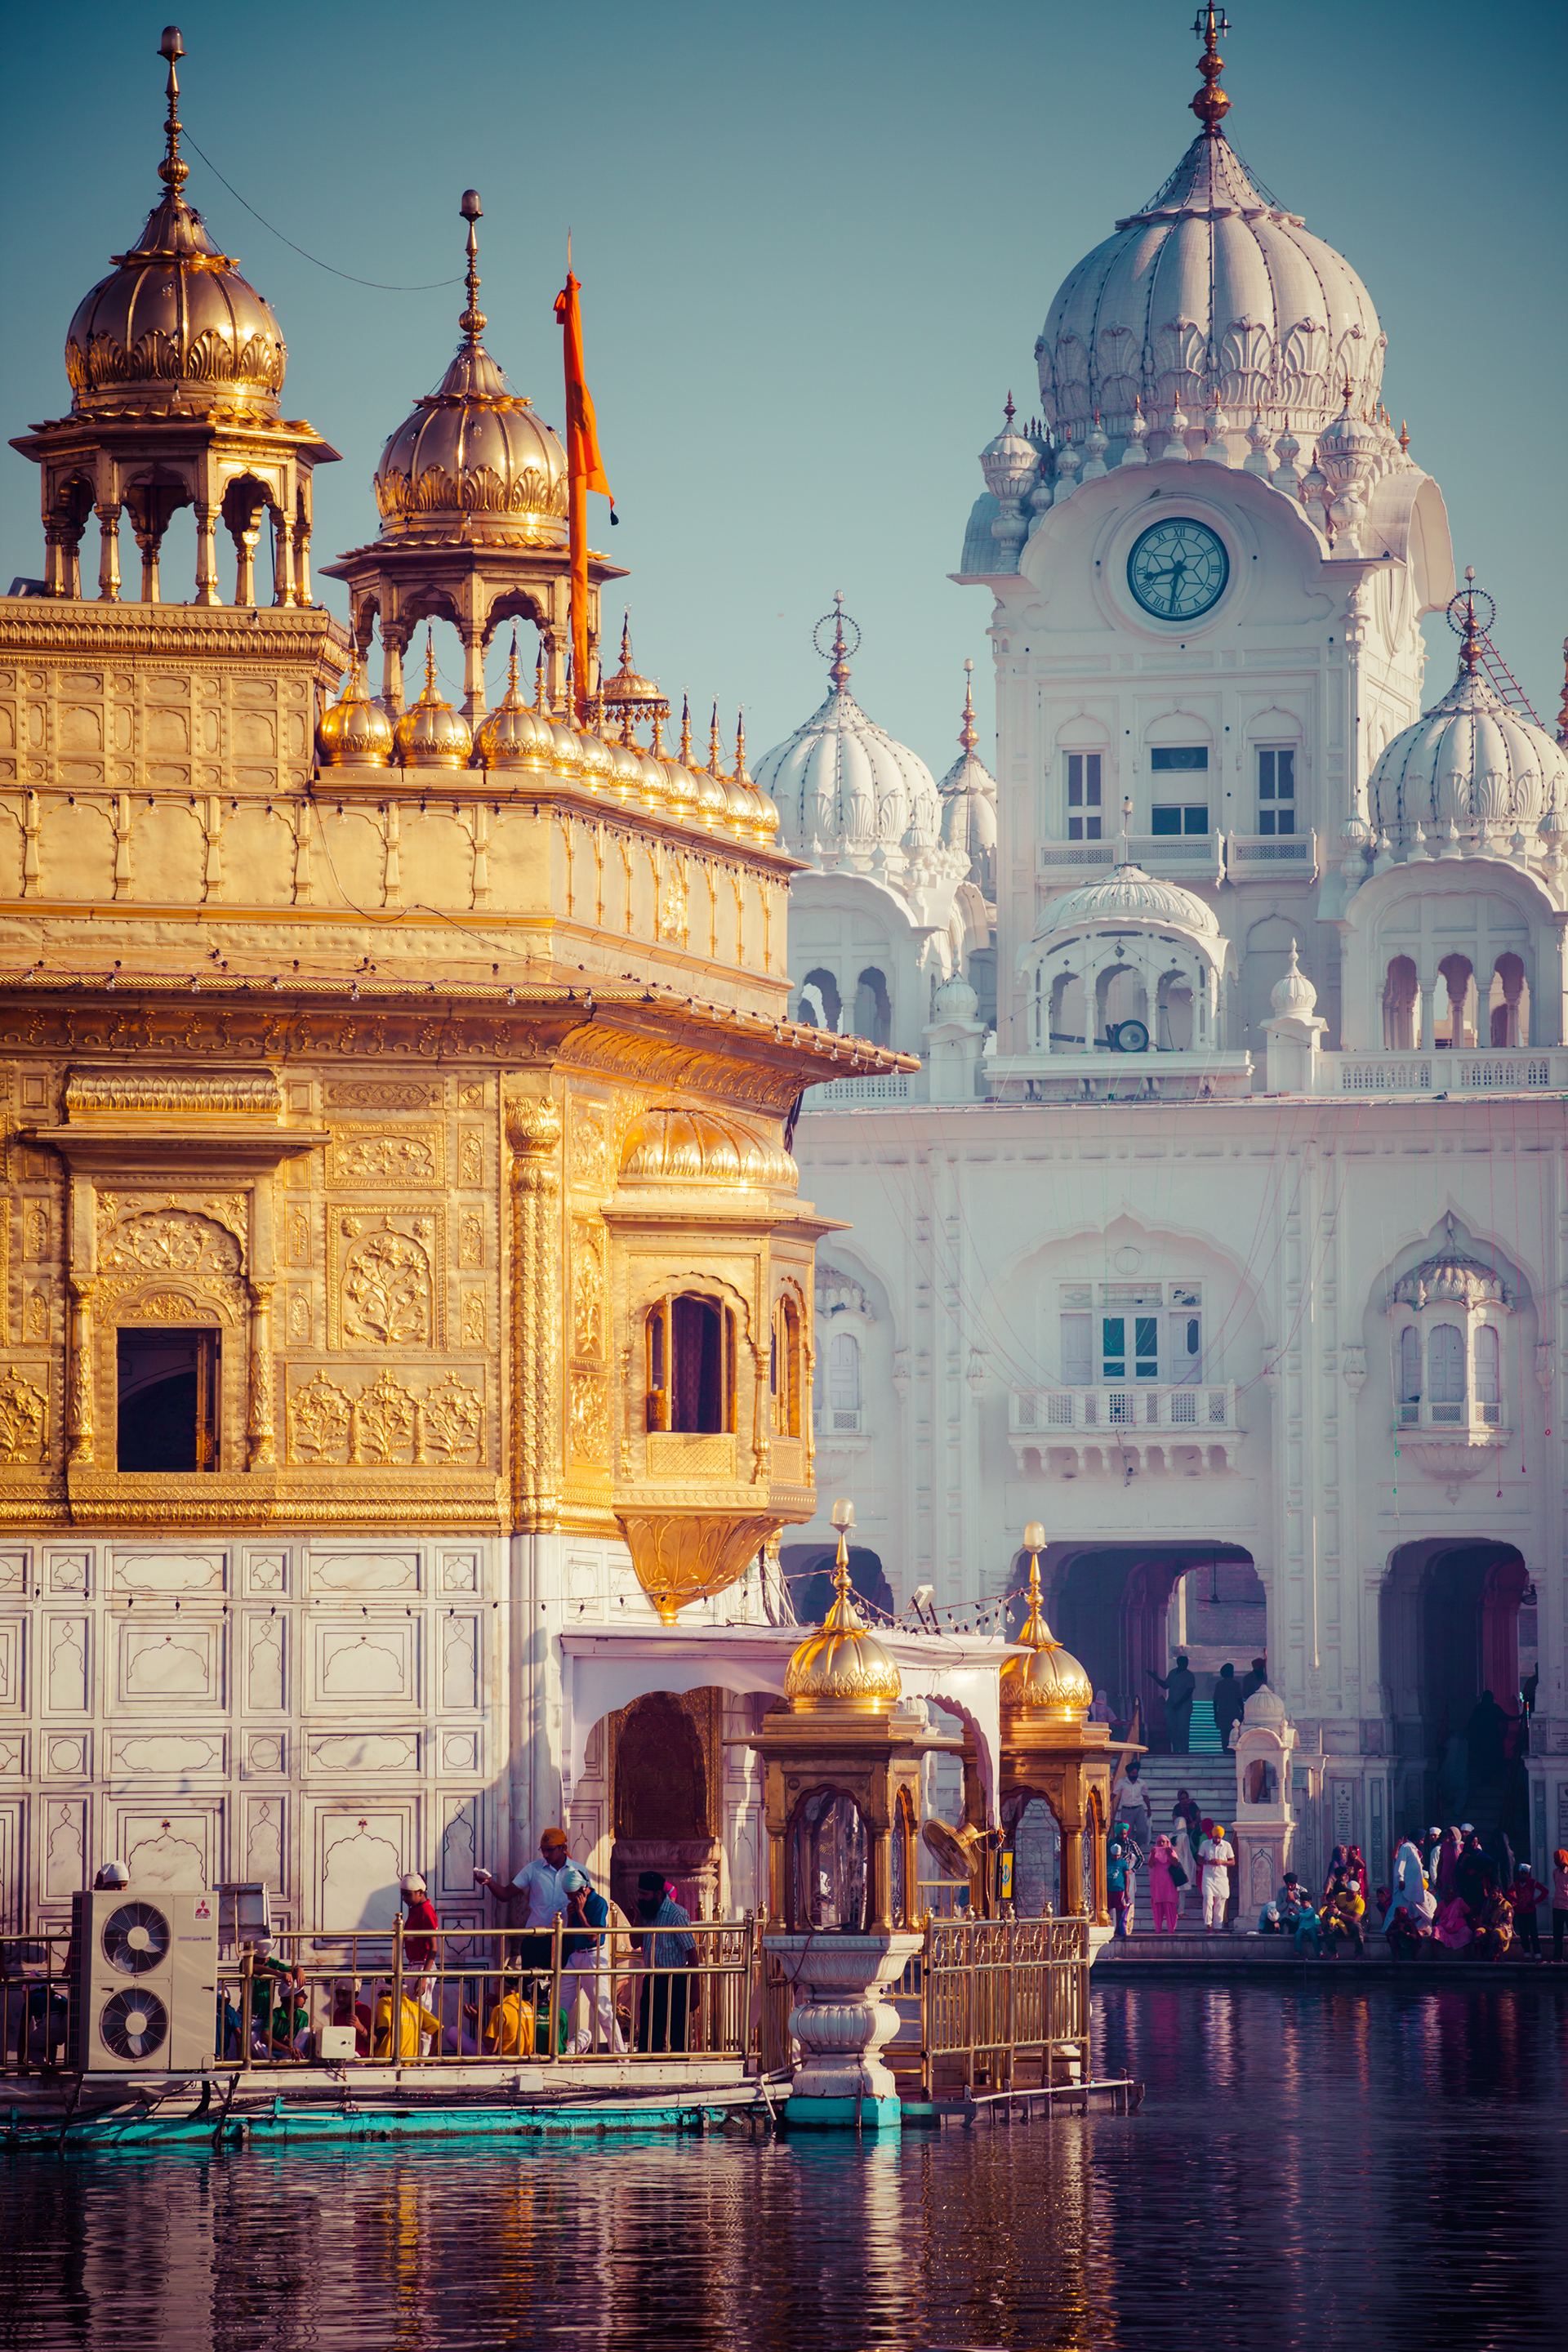 Sikh Gurdwara Golden Temple